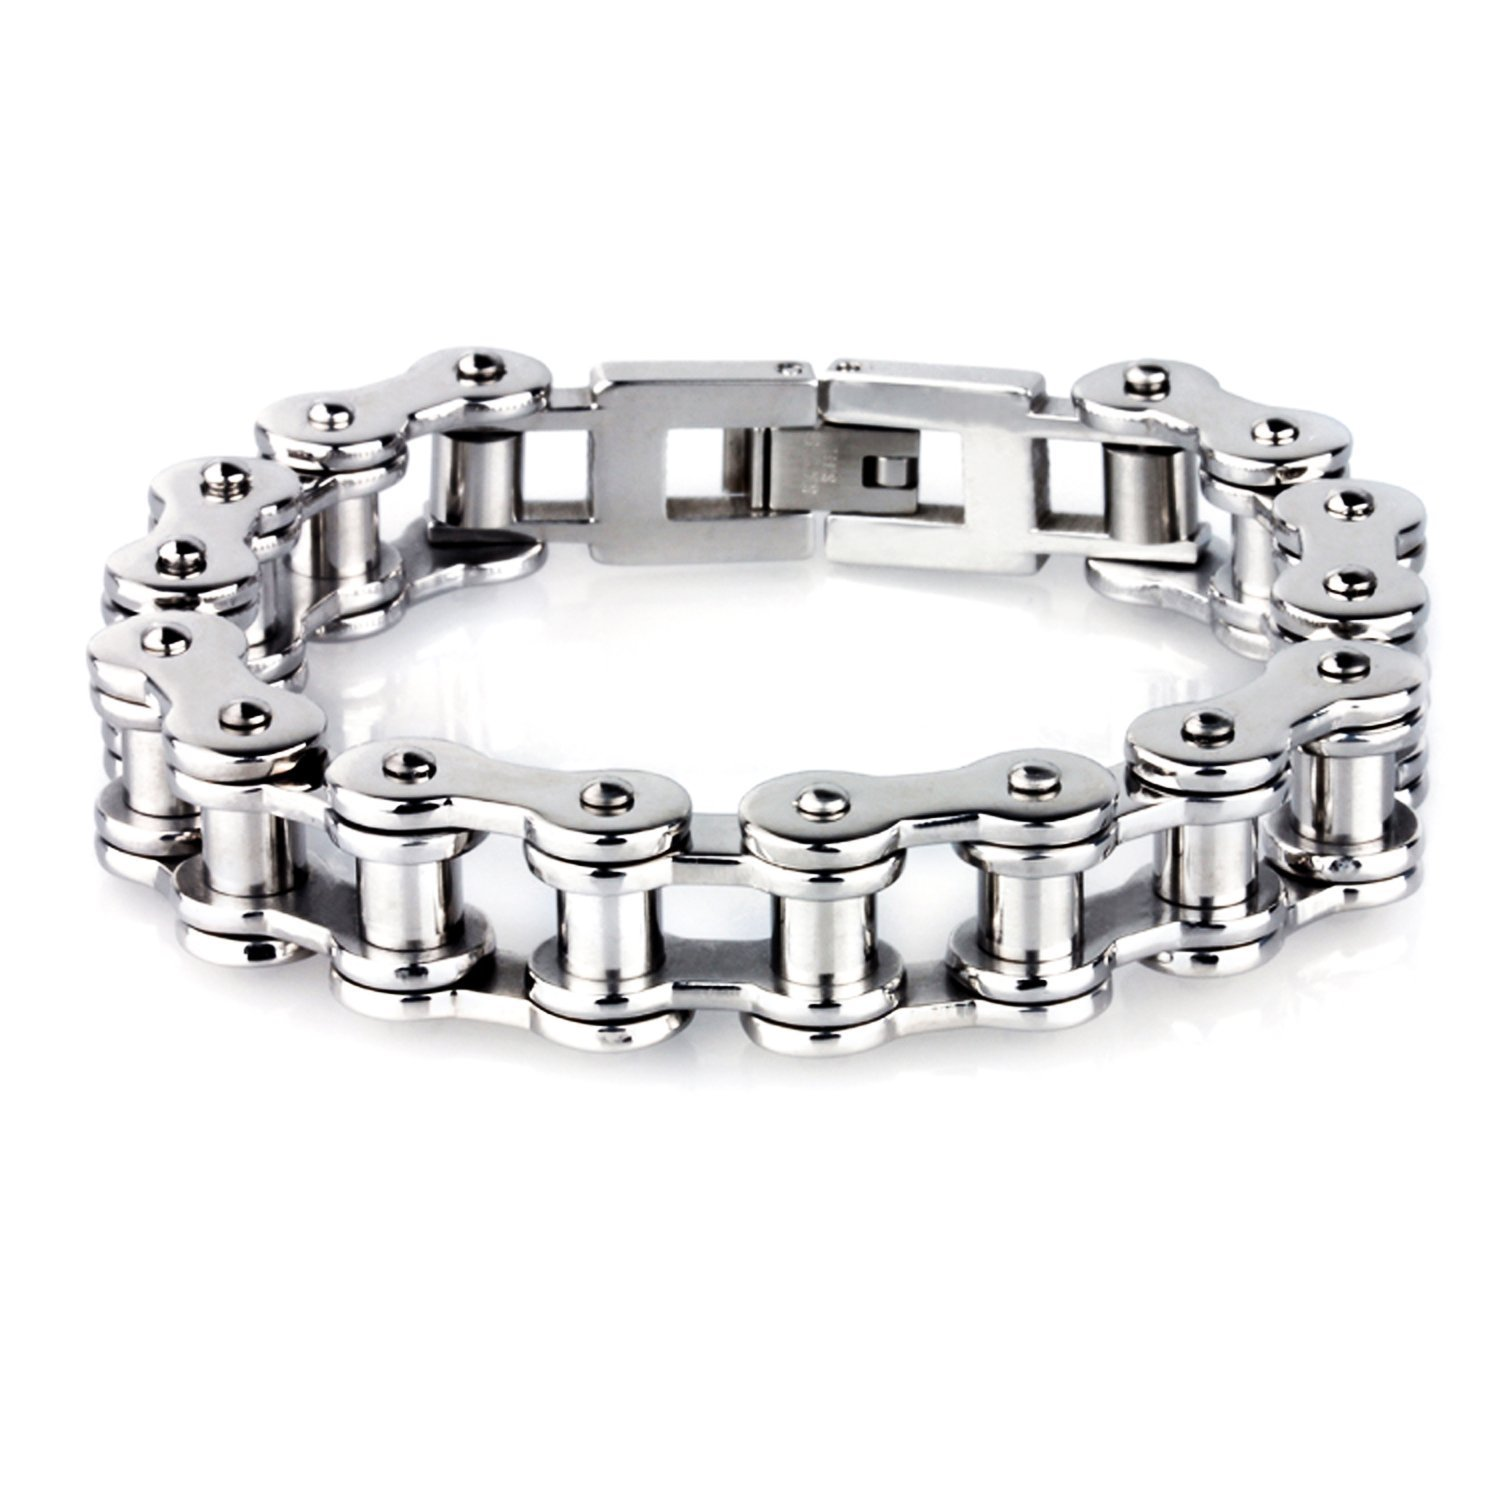 LDUDU® Men's Bracelet bicycle chain bracelet motorbike chain Stainless Steel Silver Polished gift for Valentine Gebutrstag, Christmas 850140000